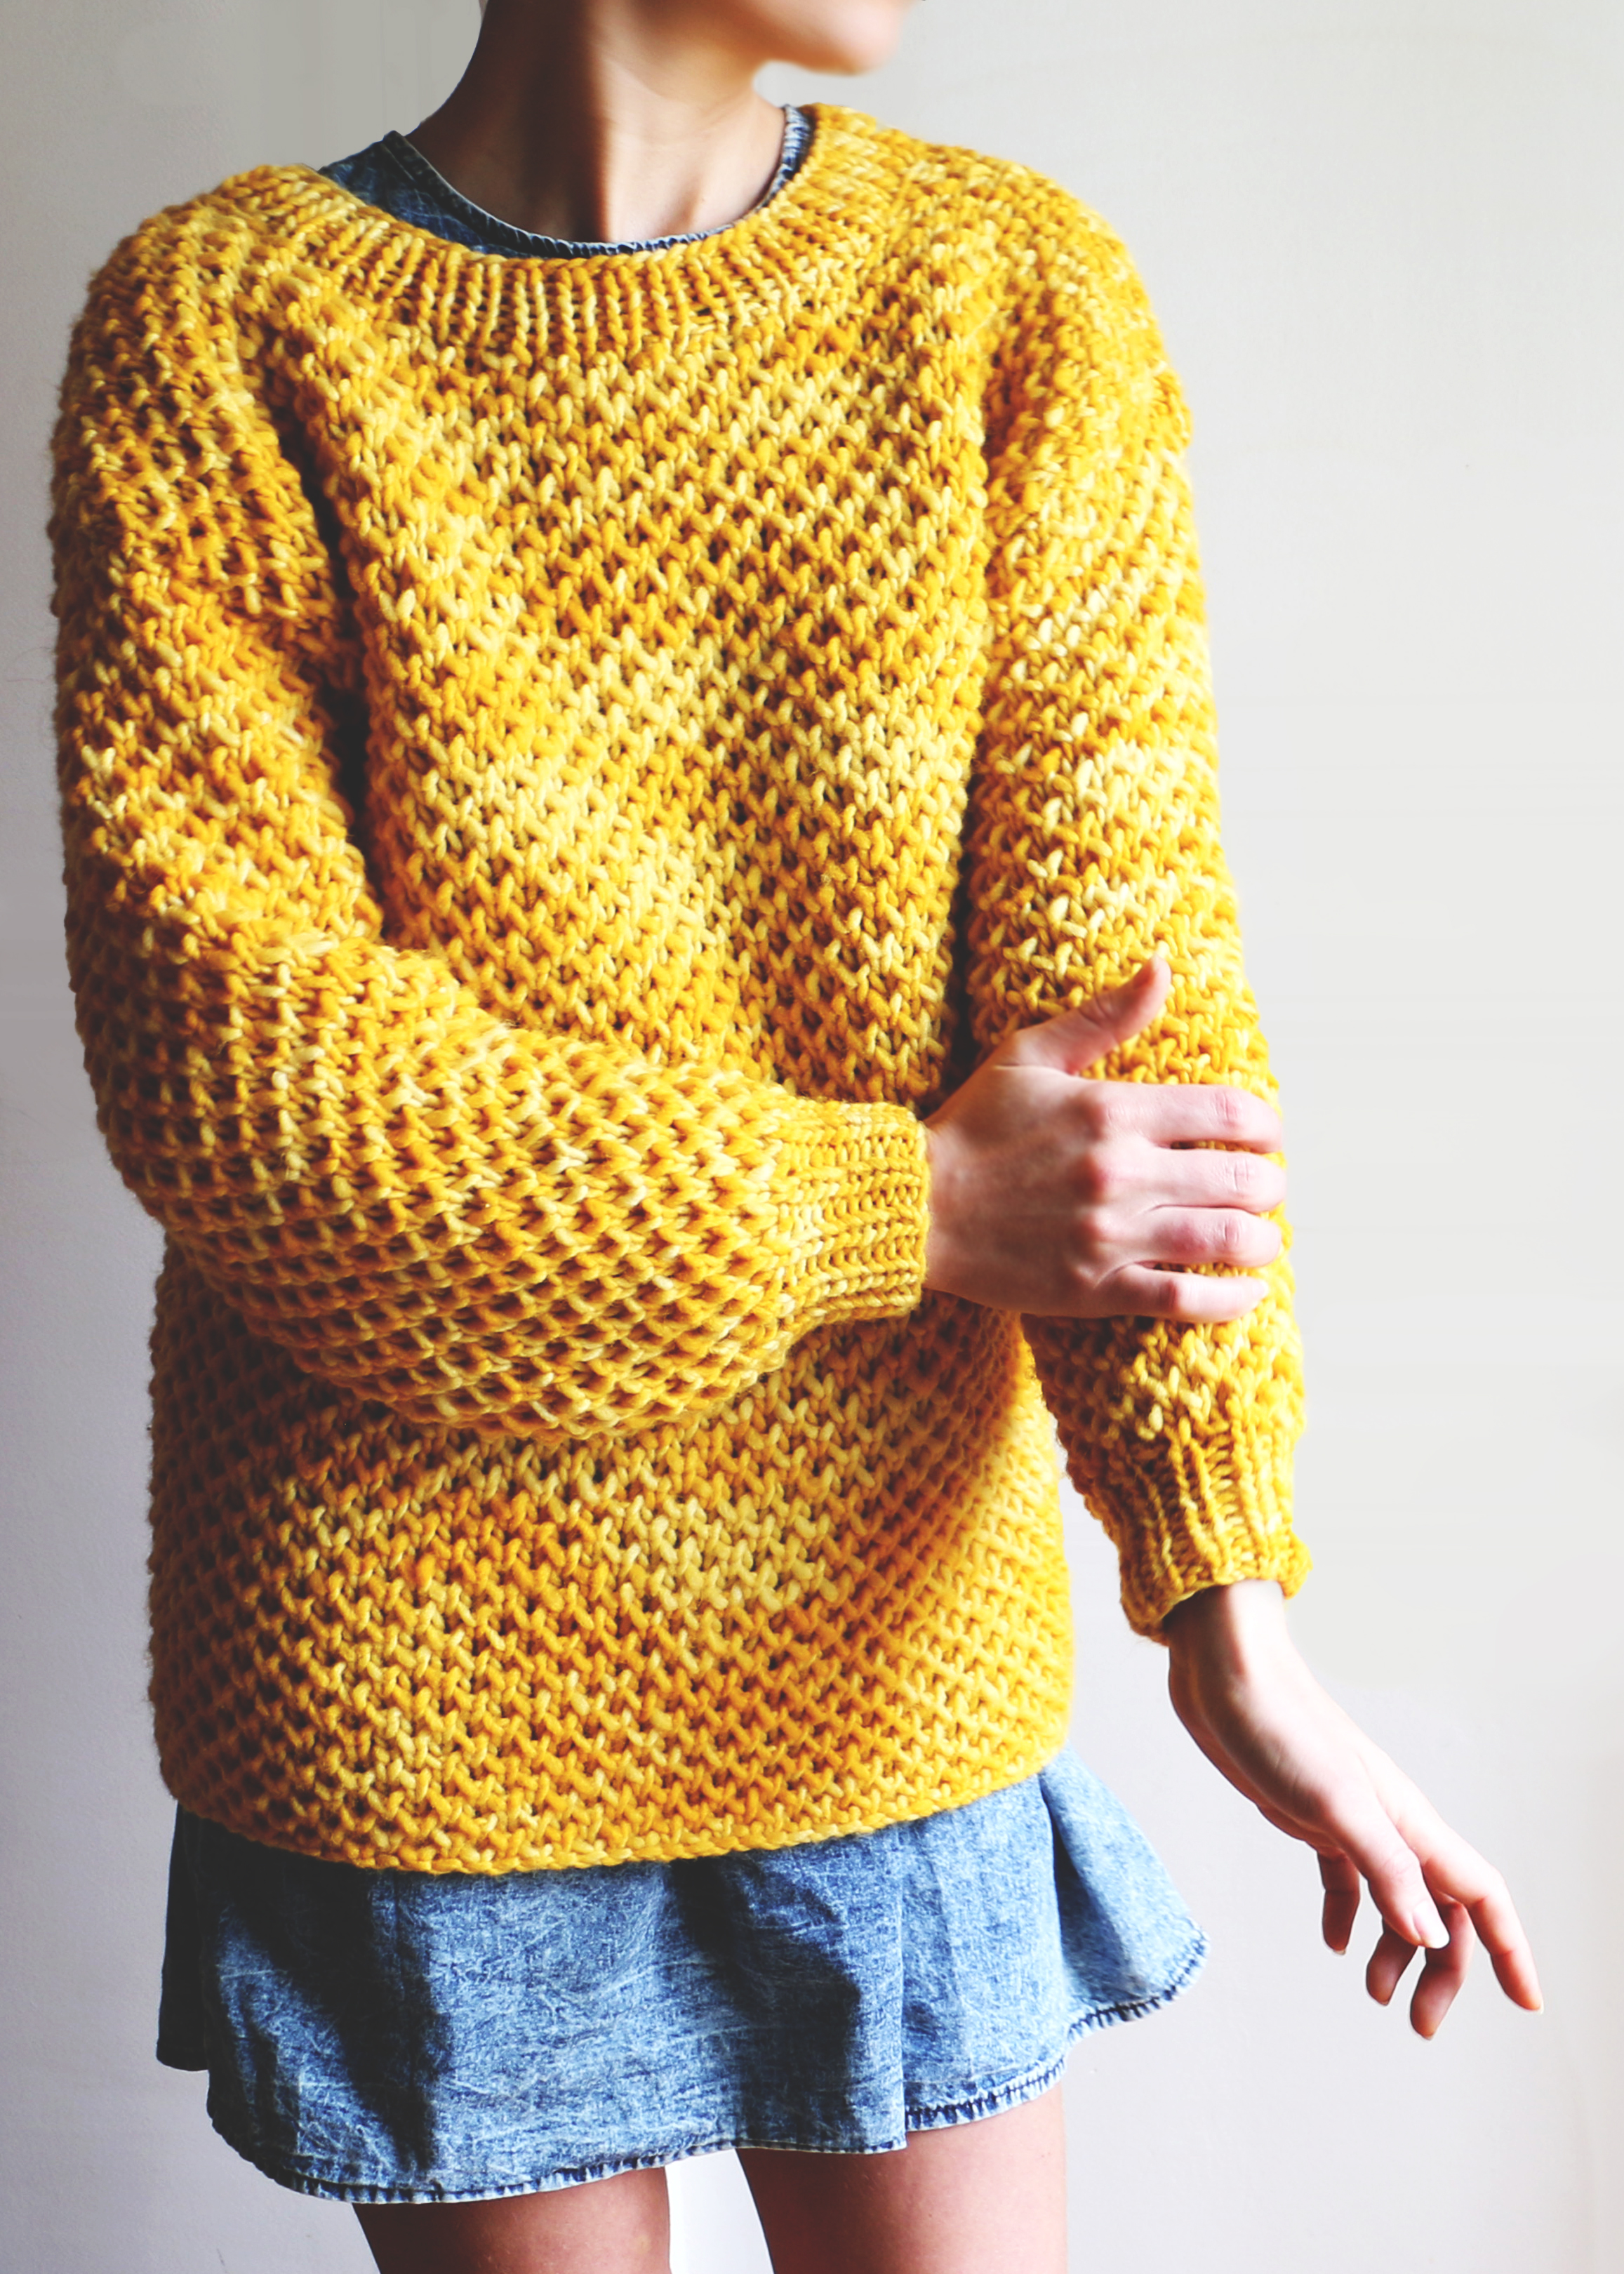 hey-honey-sweater-pattern.jpg